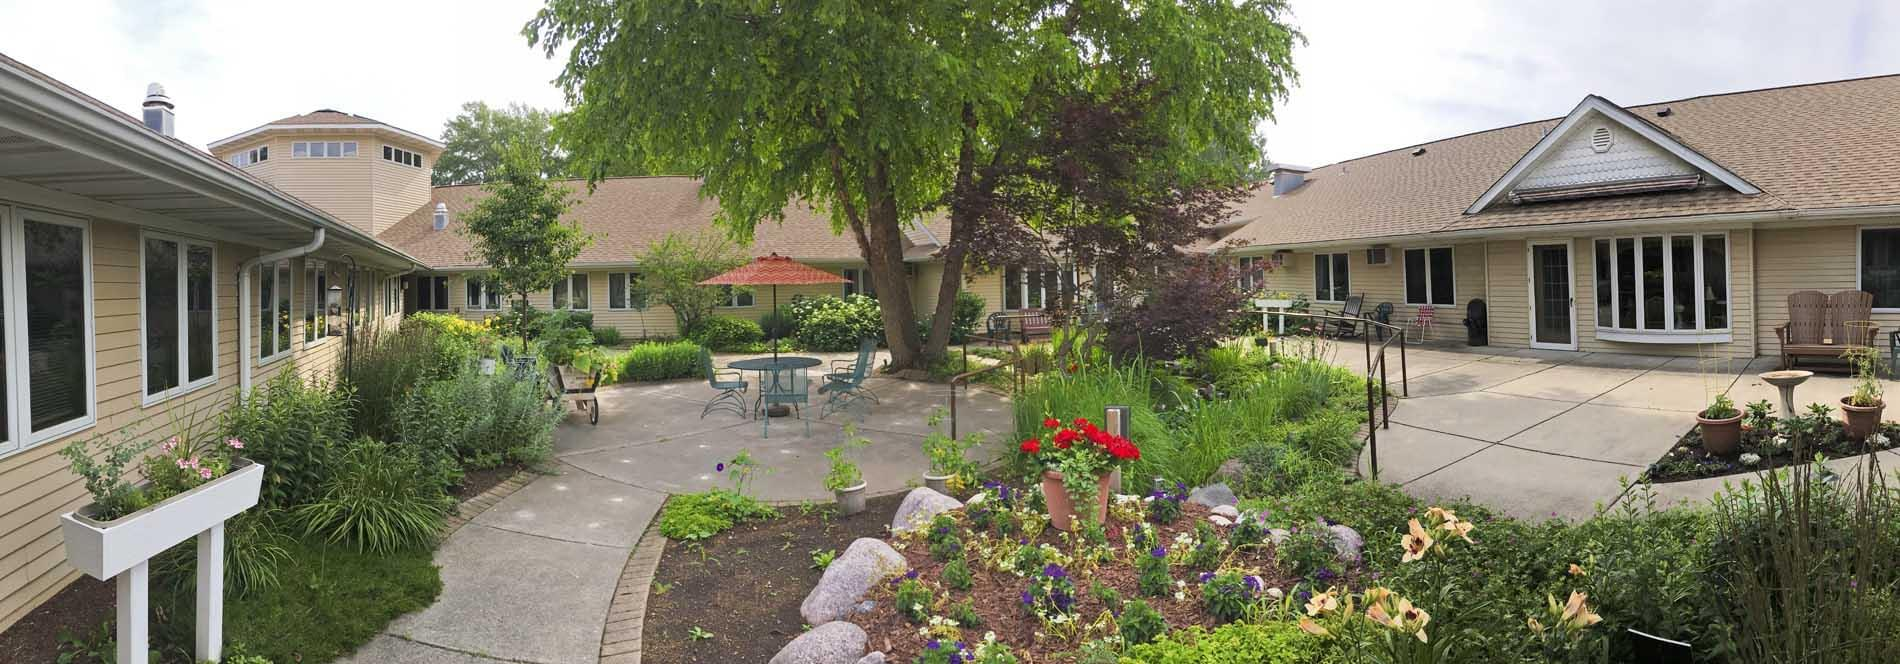 Photo of Golden Years, Assisted Living, Nursing Home, Independent Living, CCRC, Walworth, WI 7